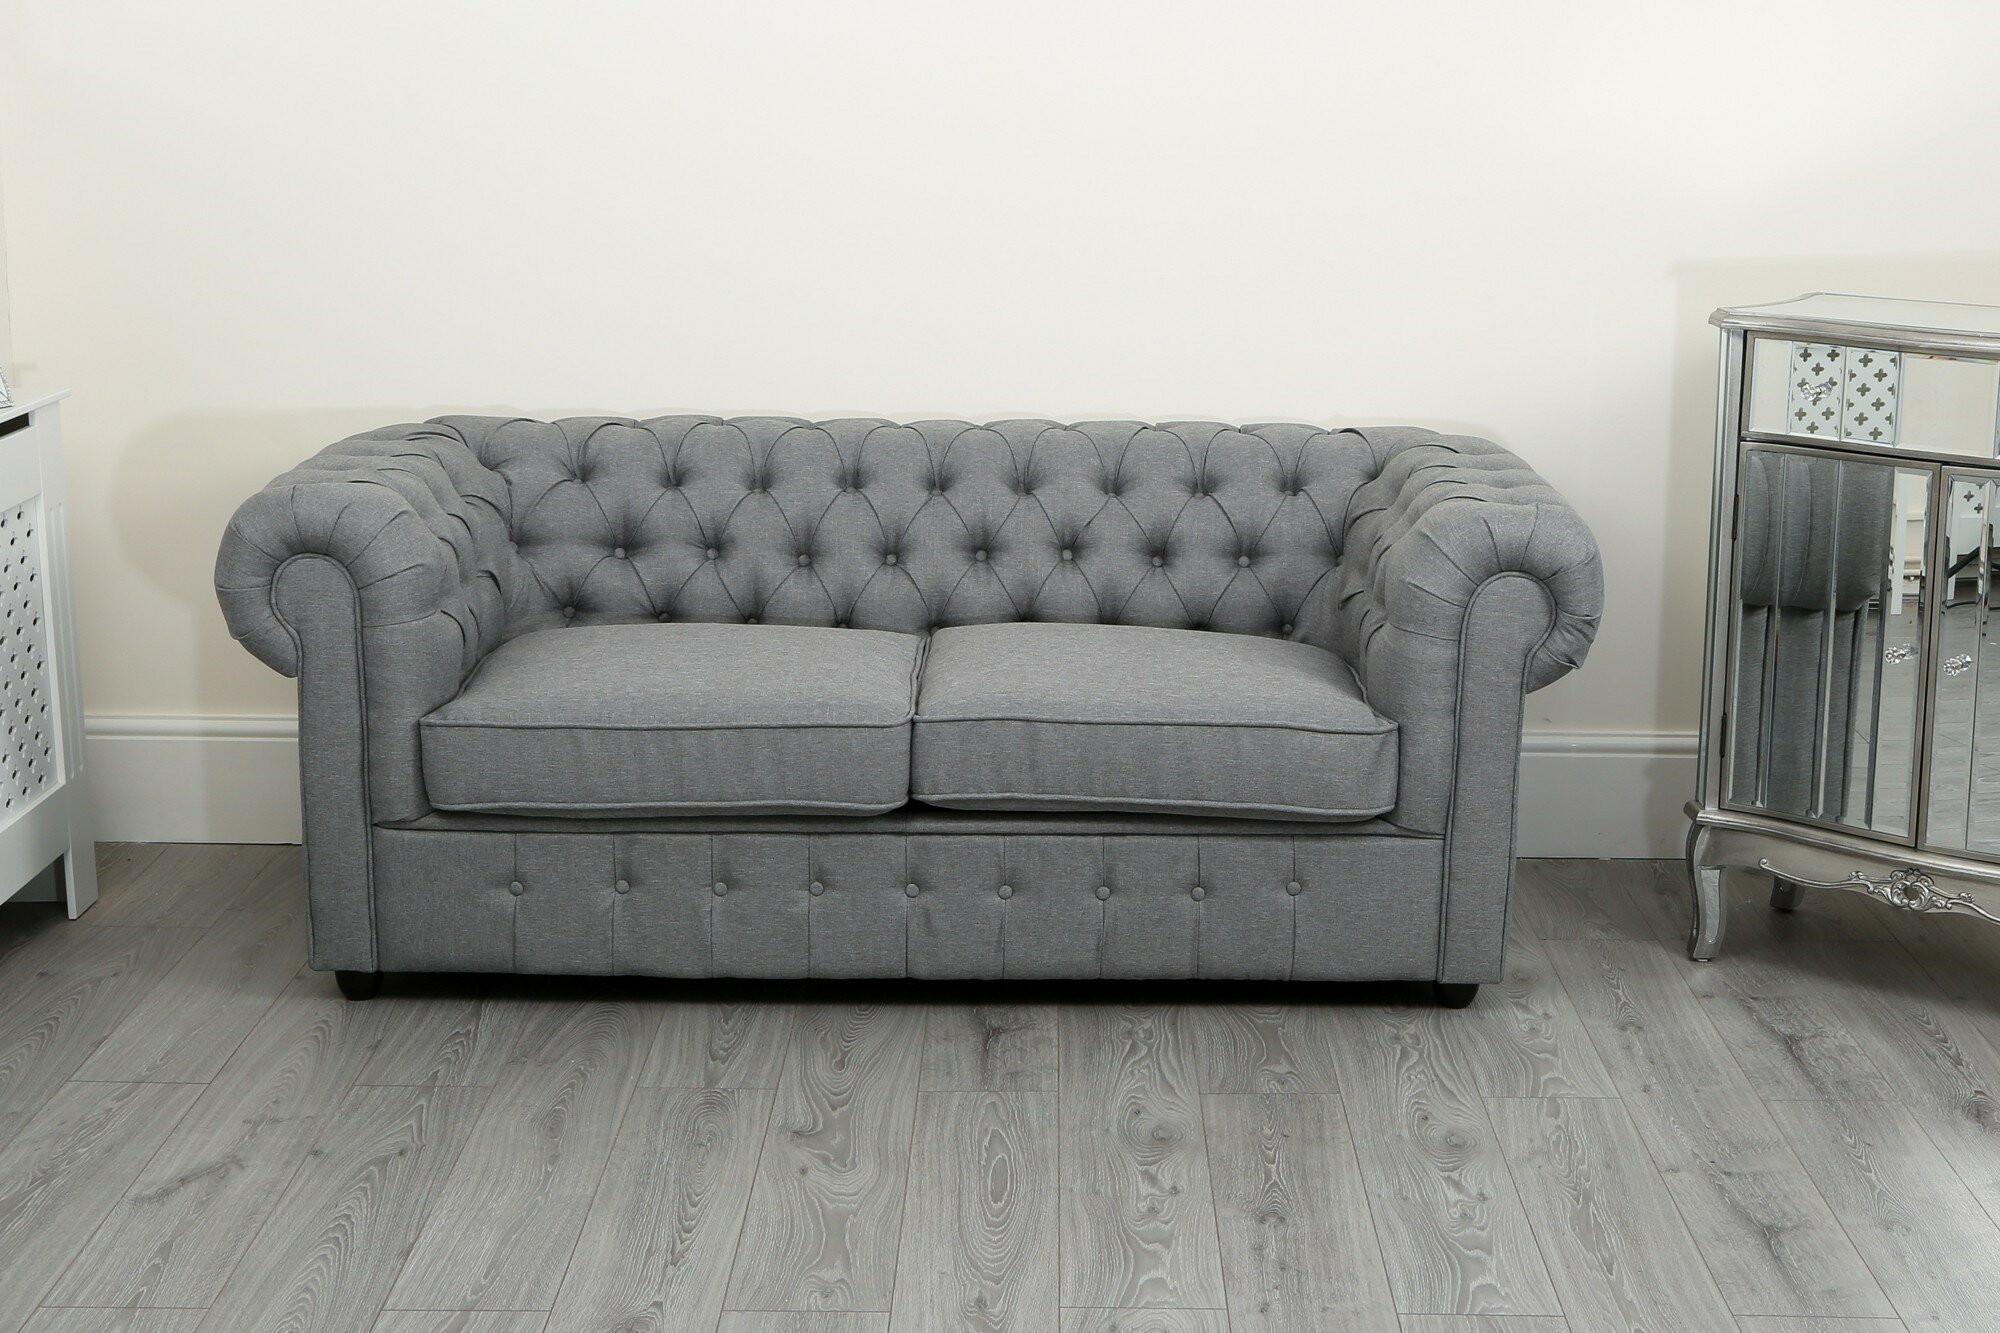 Marlow Home Co Dunston 2 Seater Chesterfield Sofa Wayfair Co Uk